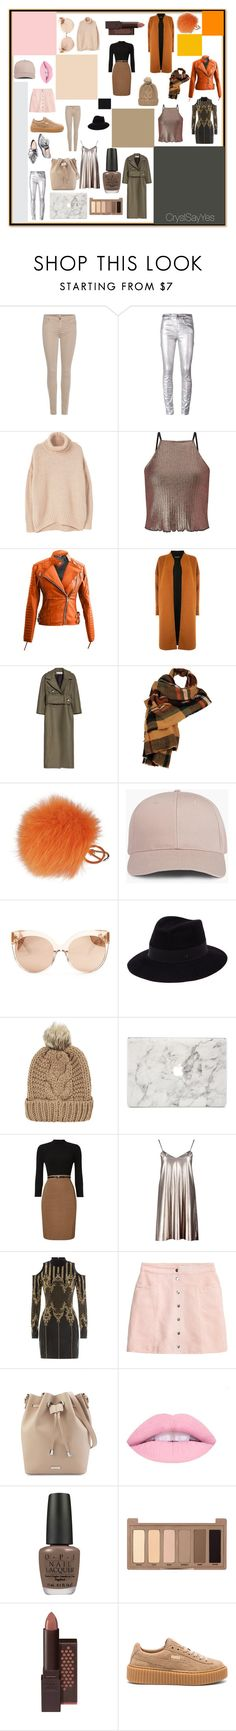 """Relooking DemiJournée ""Colorama"""" by crystelpi on Polyvore featuring 7 For All Mankind, Étoile Isabel Marant, MANGO, Miss Selfridge, Warehouse, Marni, Wilsons Leather, Furla, Linda Farrow et Maison Michel"